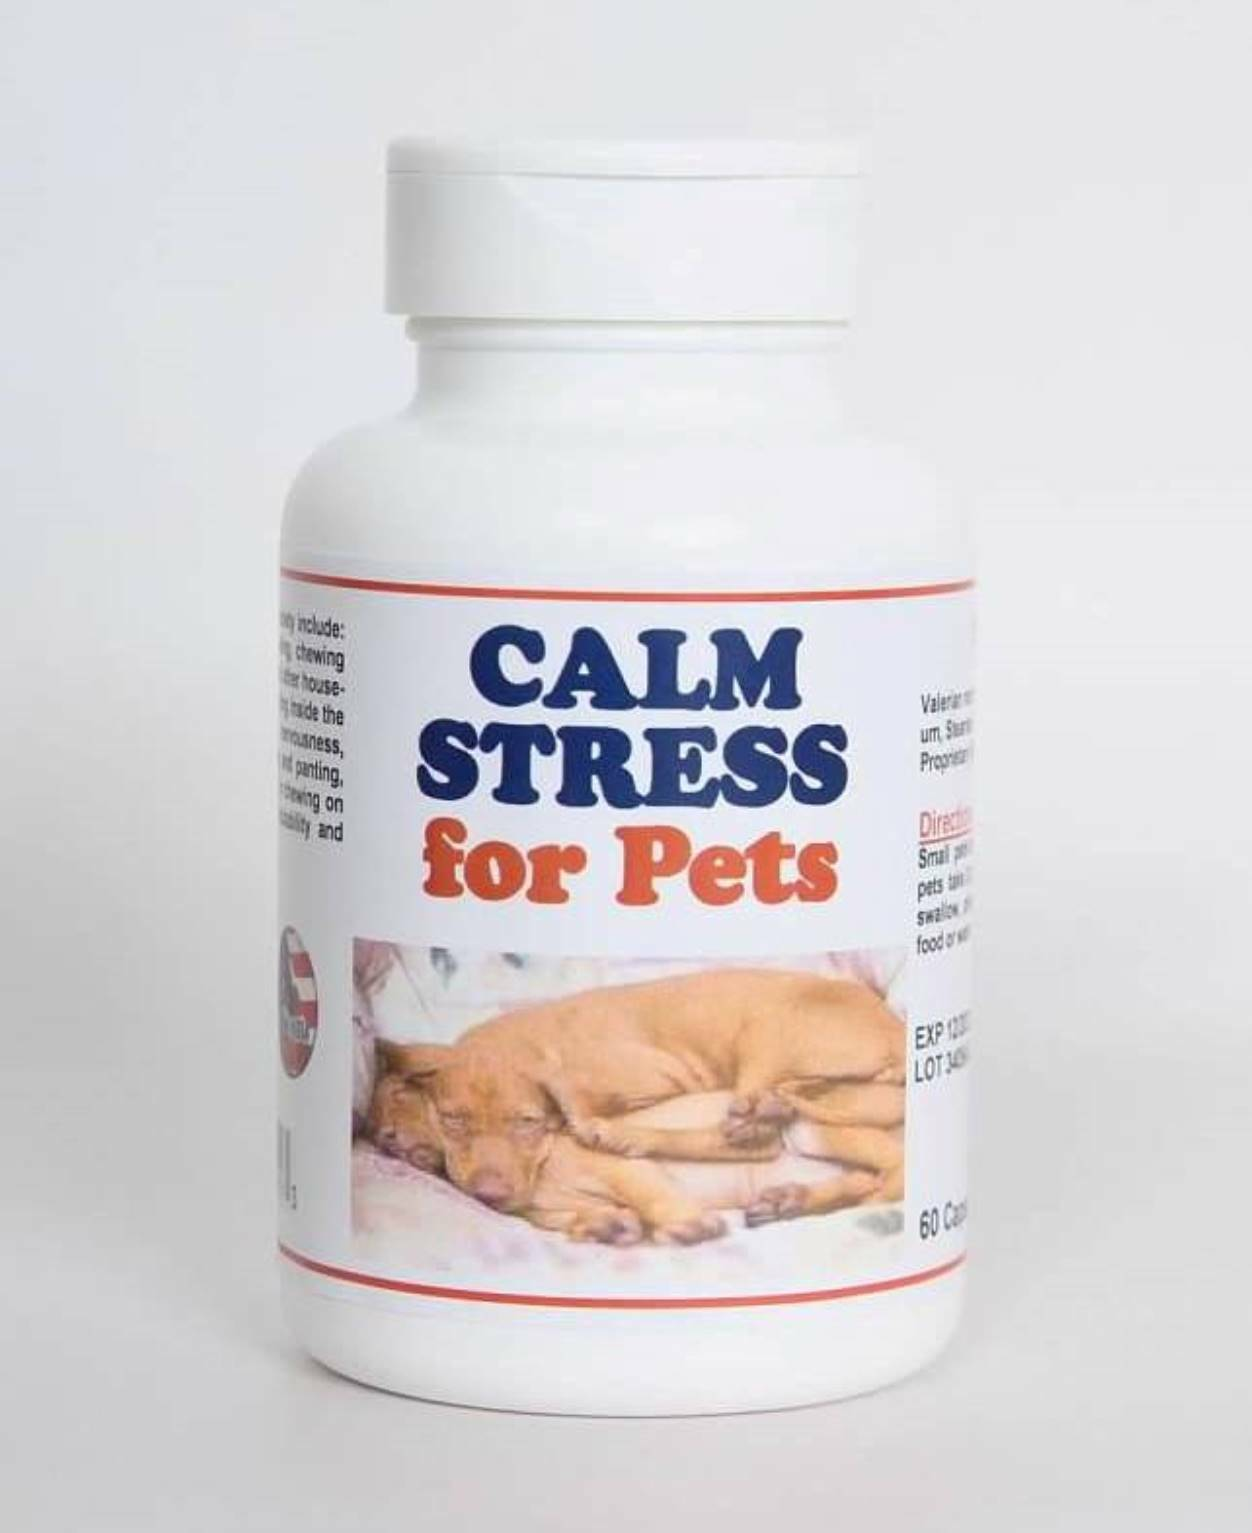 CALM STRESS CARE FOR PETS - Anxiety Supplement for Pets - Made in USA